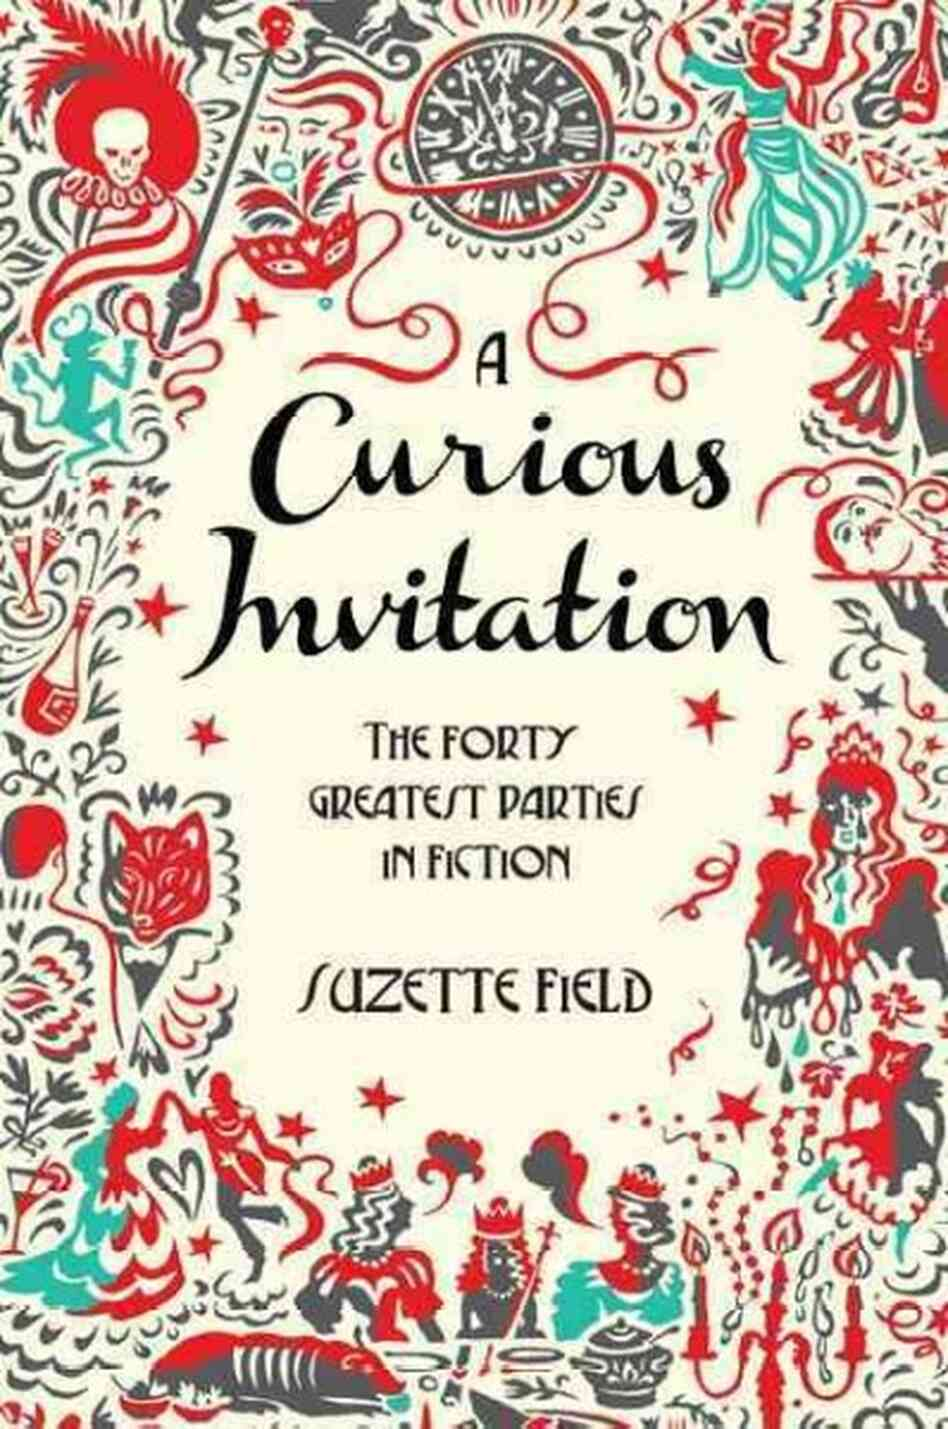 A Curious Invitation